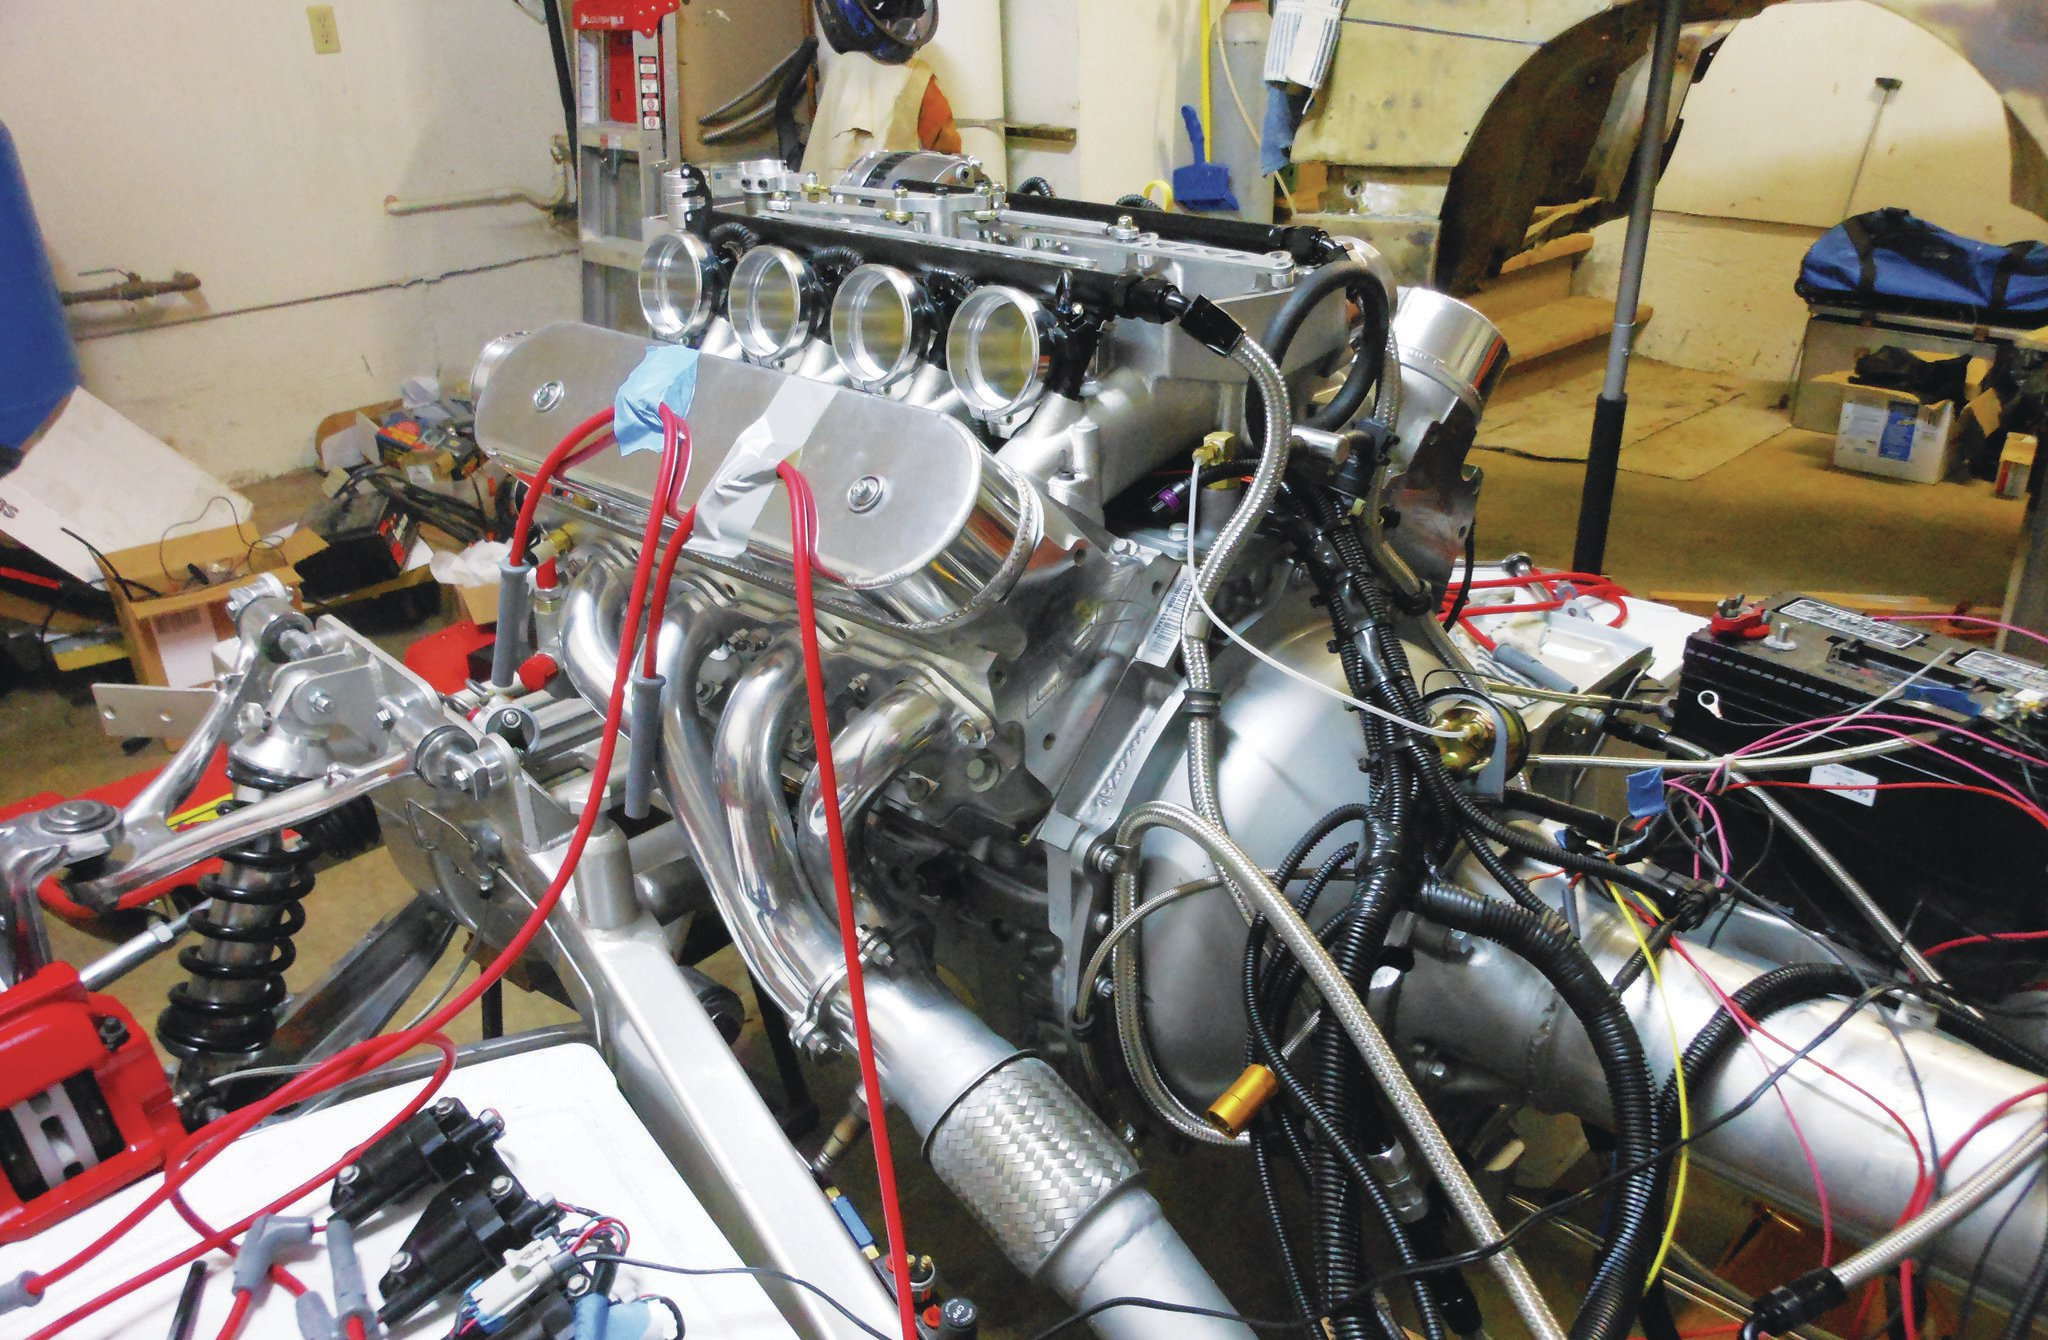 "At this stage, Paul has the Harrop Engineering (Harrop.com.au) ""Hurricane"" EFI intake, the exhaust has been constructed and installed, and wiring has commenced. He says packaging all of the electronics in a car never designed for them was the most challenging part of the build."